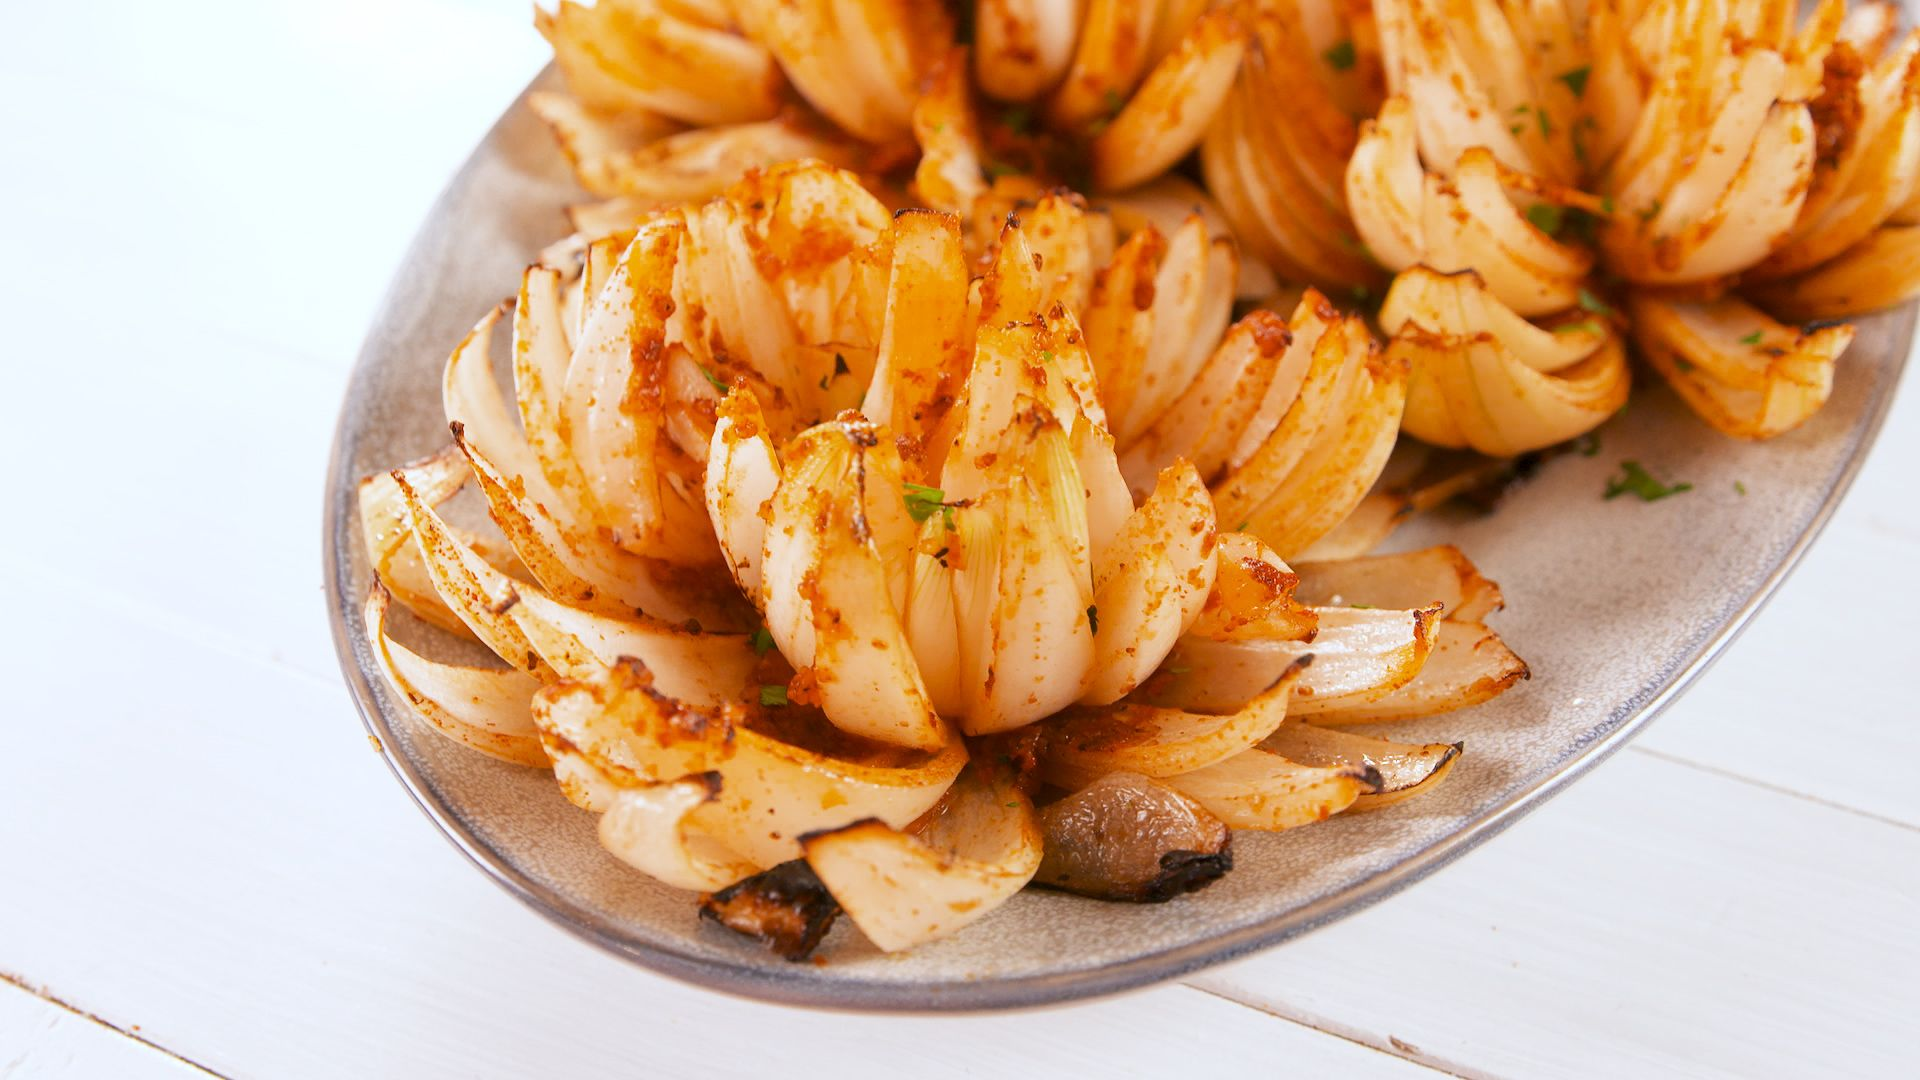 Best Grilled Onion Blossoms Recipe How To Make Grilled Onion Blossoms